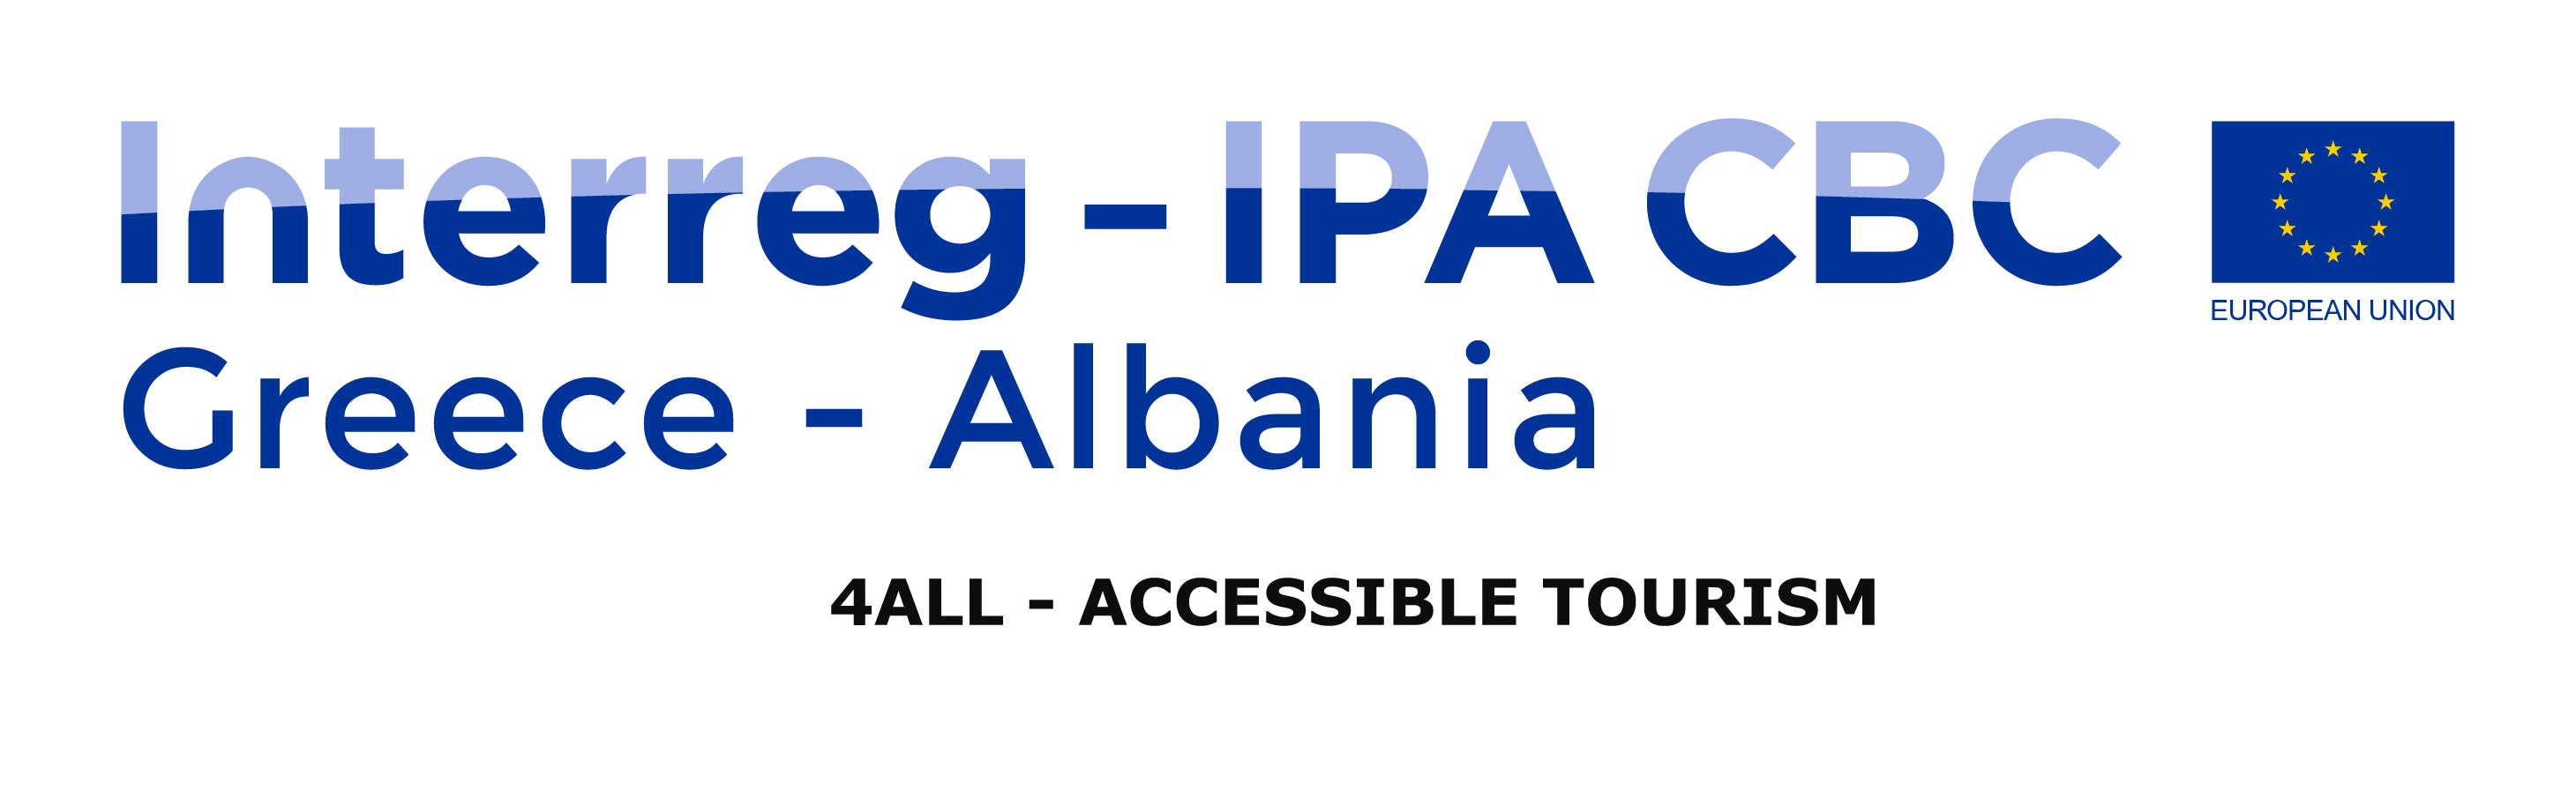 Interreg IPA CBC GR ALB 4ALL